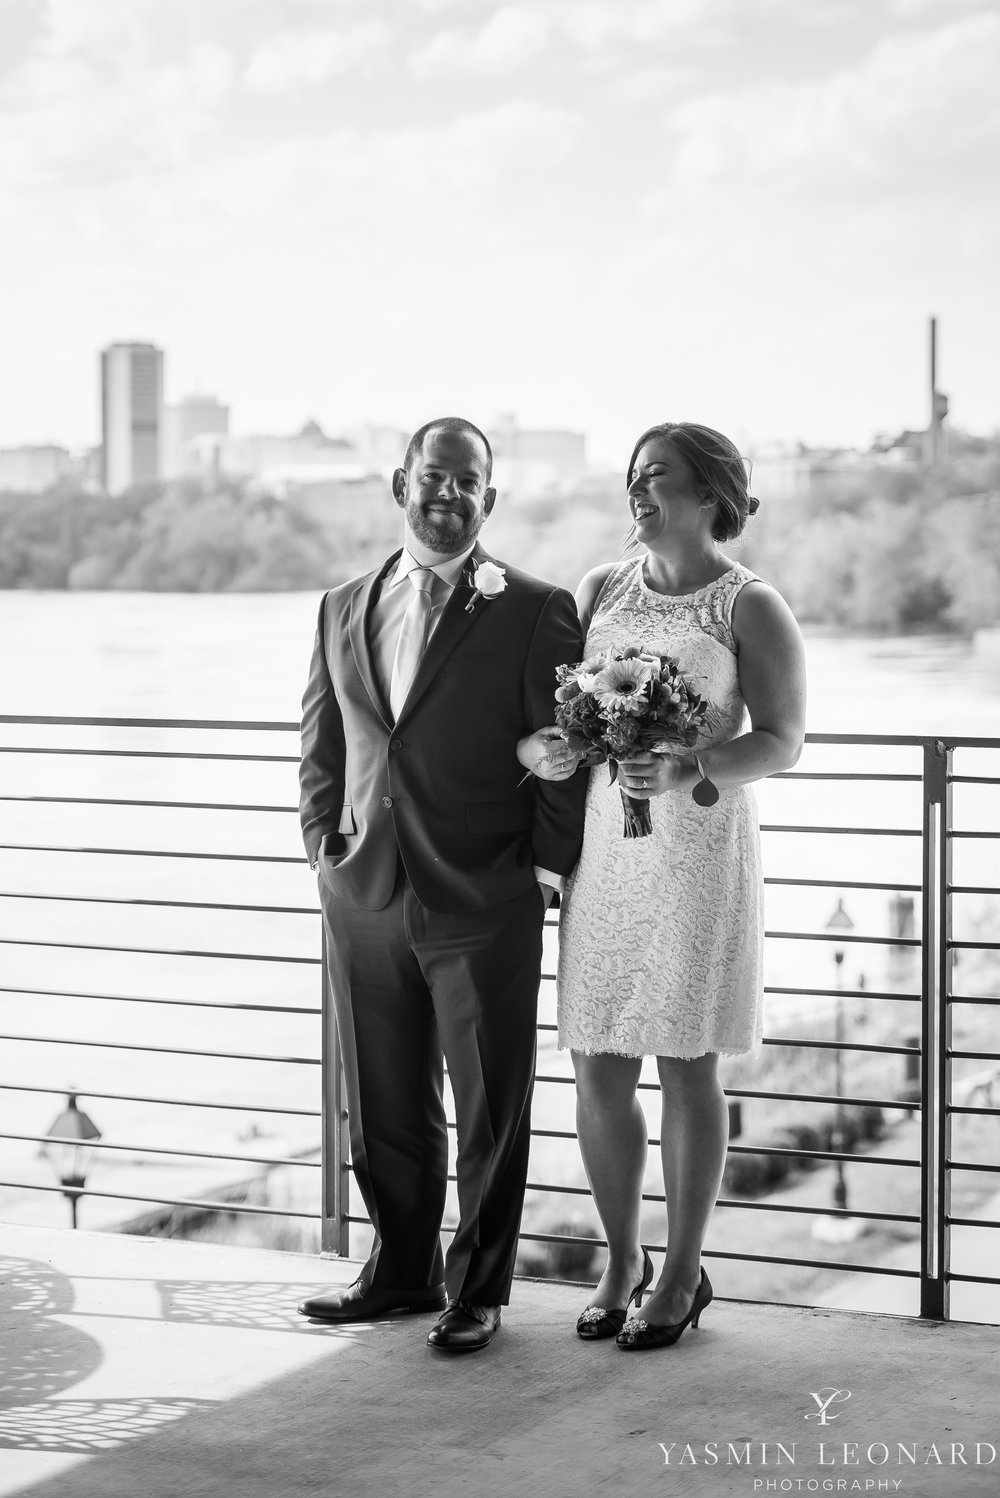 The Boathouse - The boathouse weddings - RVA Weddings - Richmond VA - Richmond VA Weddings - The Boathouse Weddings-25.jpg